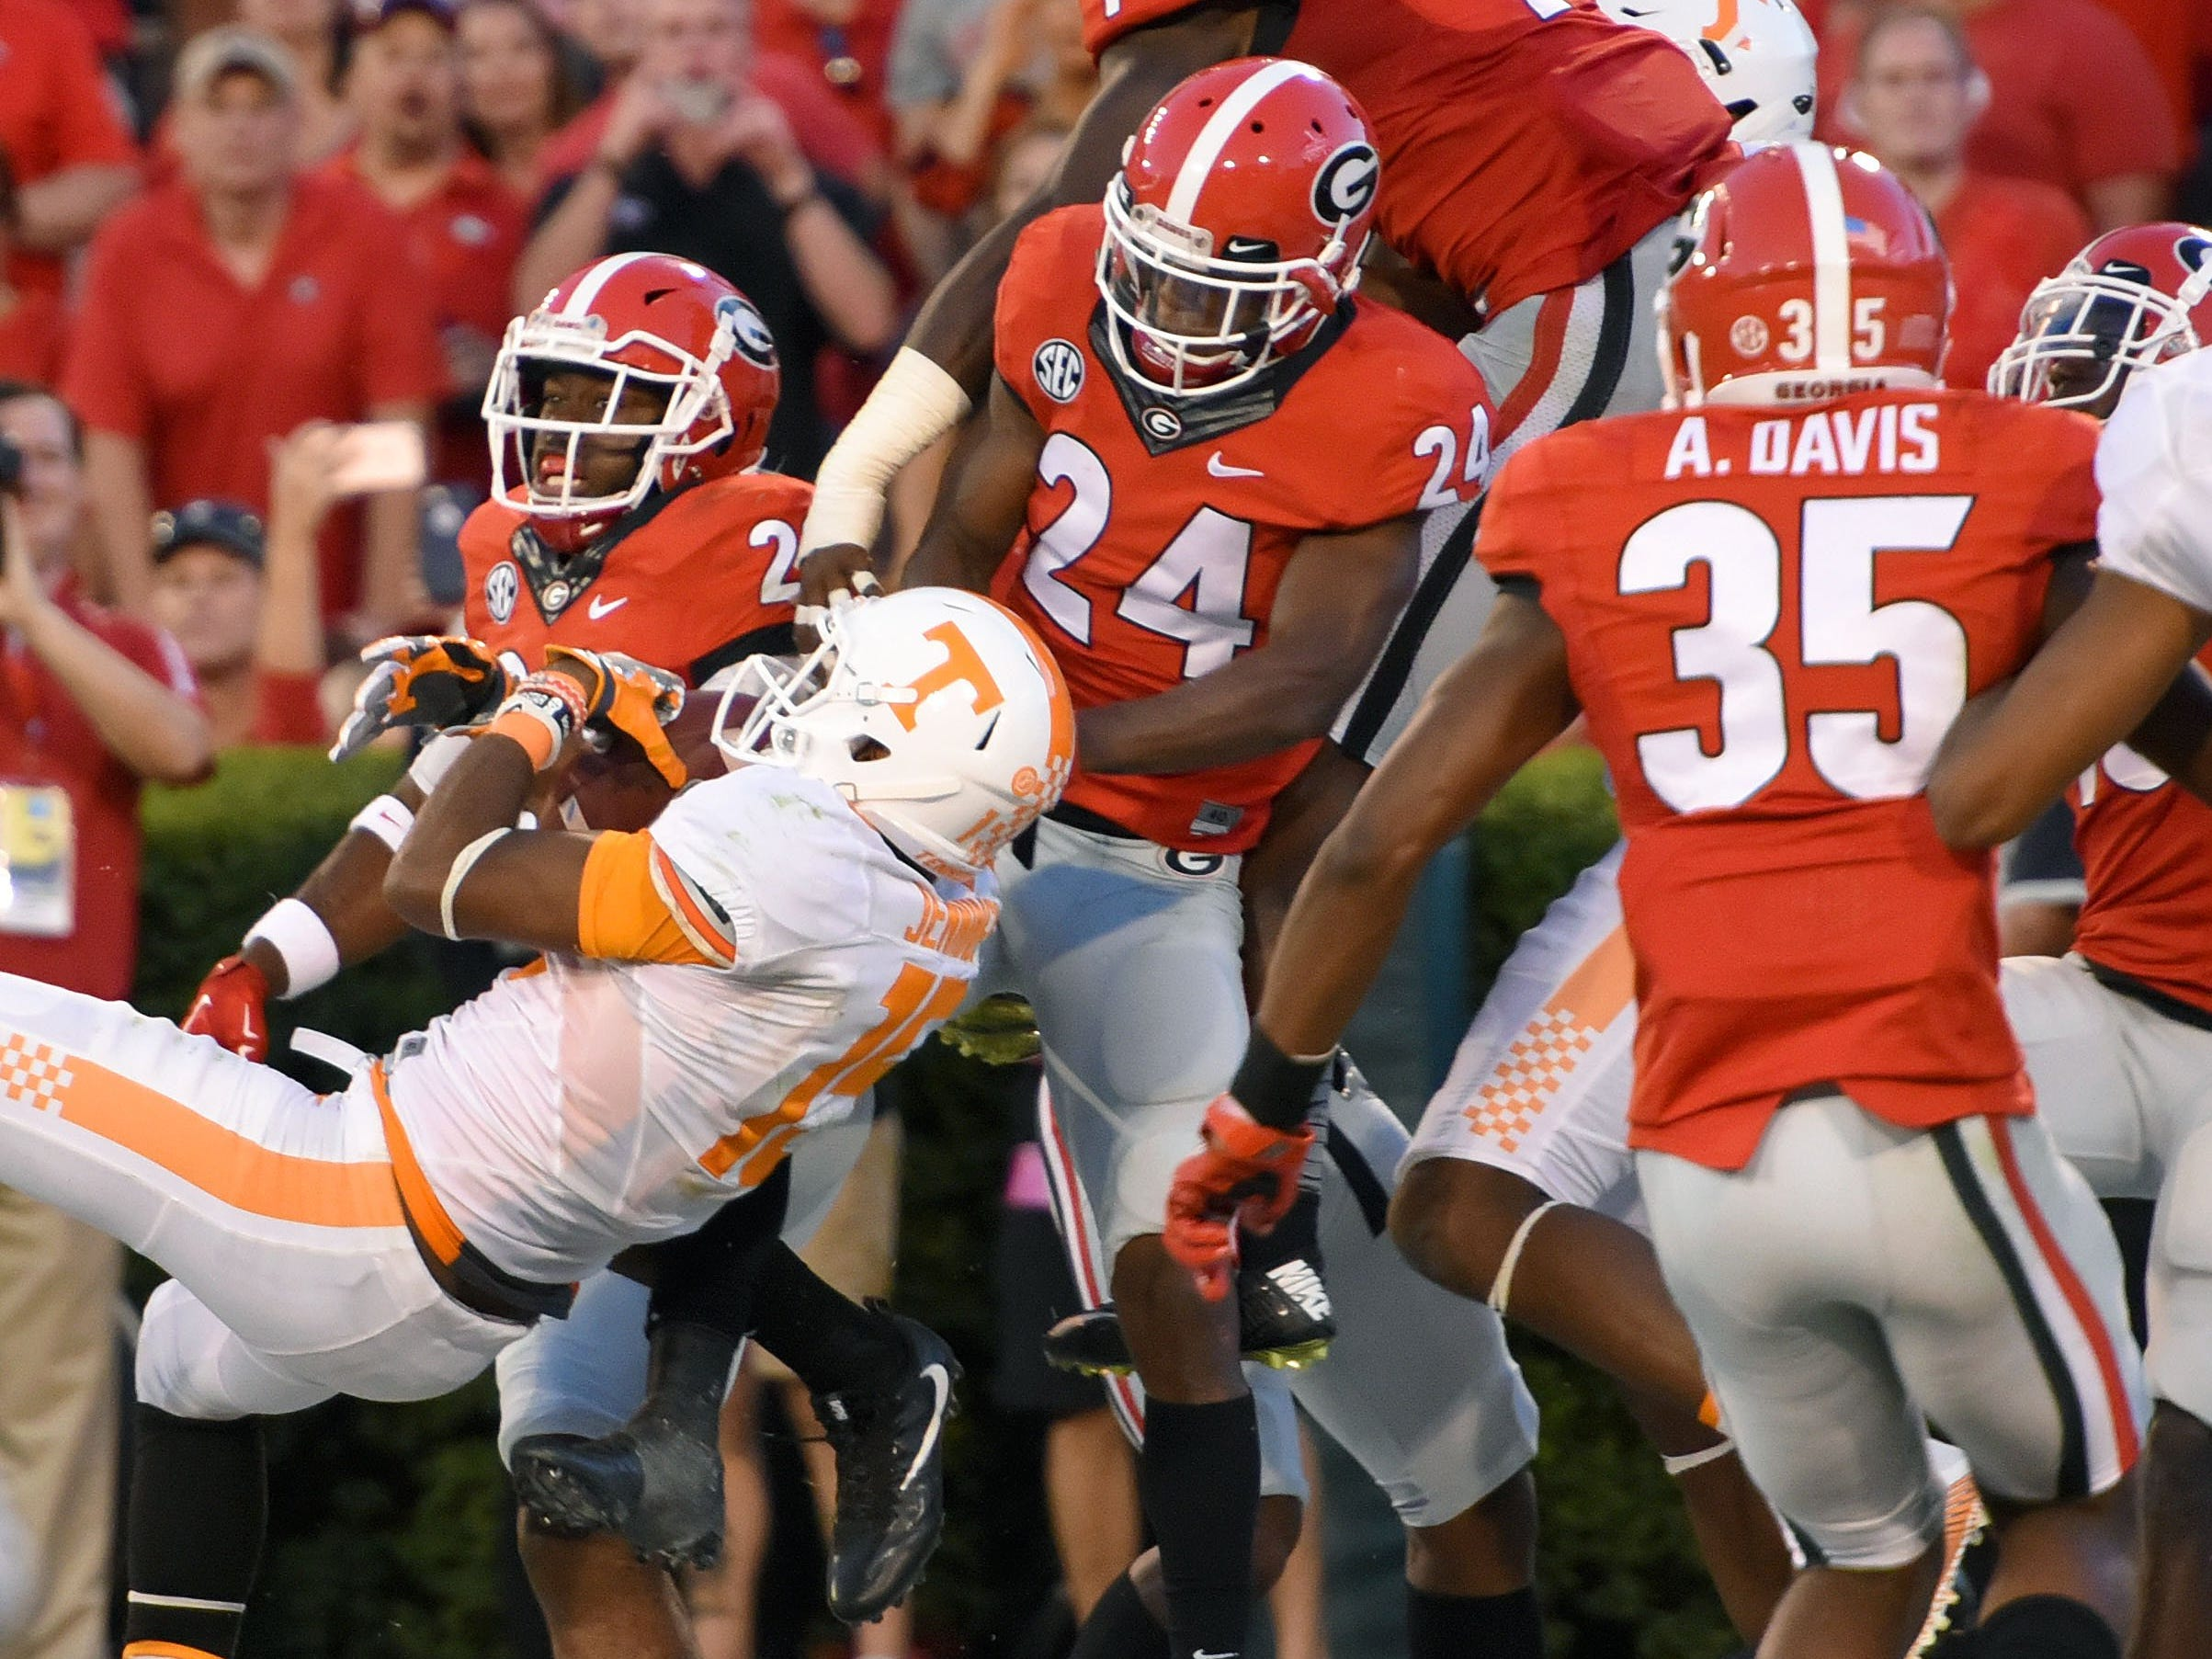 Tennessee wide receiver Jauan Jennings (15) comes down with winning touchdown in their 34-31 win over  Georgia at Sanford Stadium Saturday, Oct. 1, 2016 in Athens, Ga.